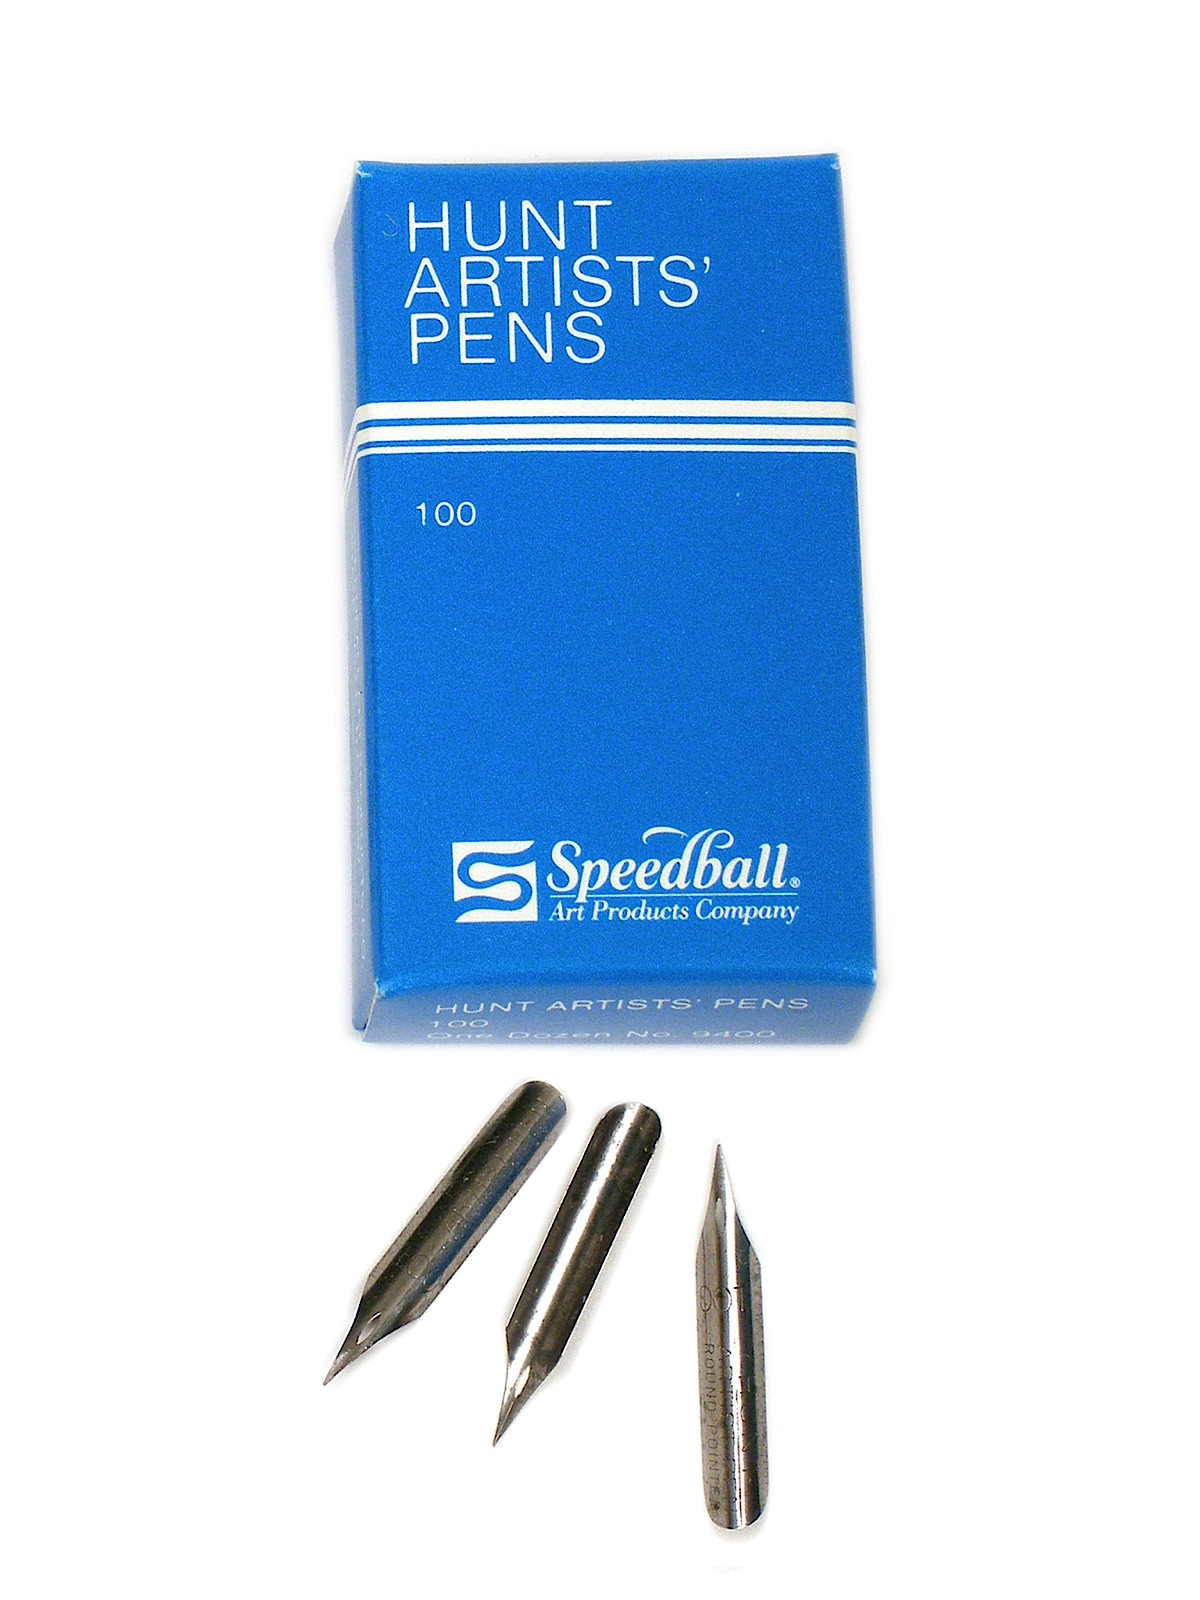 Hunt Artists' Pen Nibs--Artist No. 100